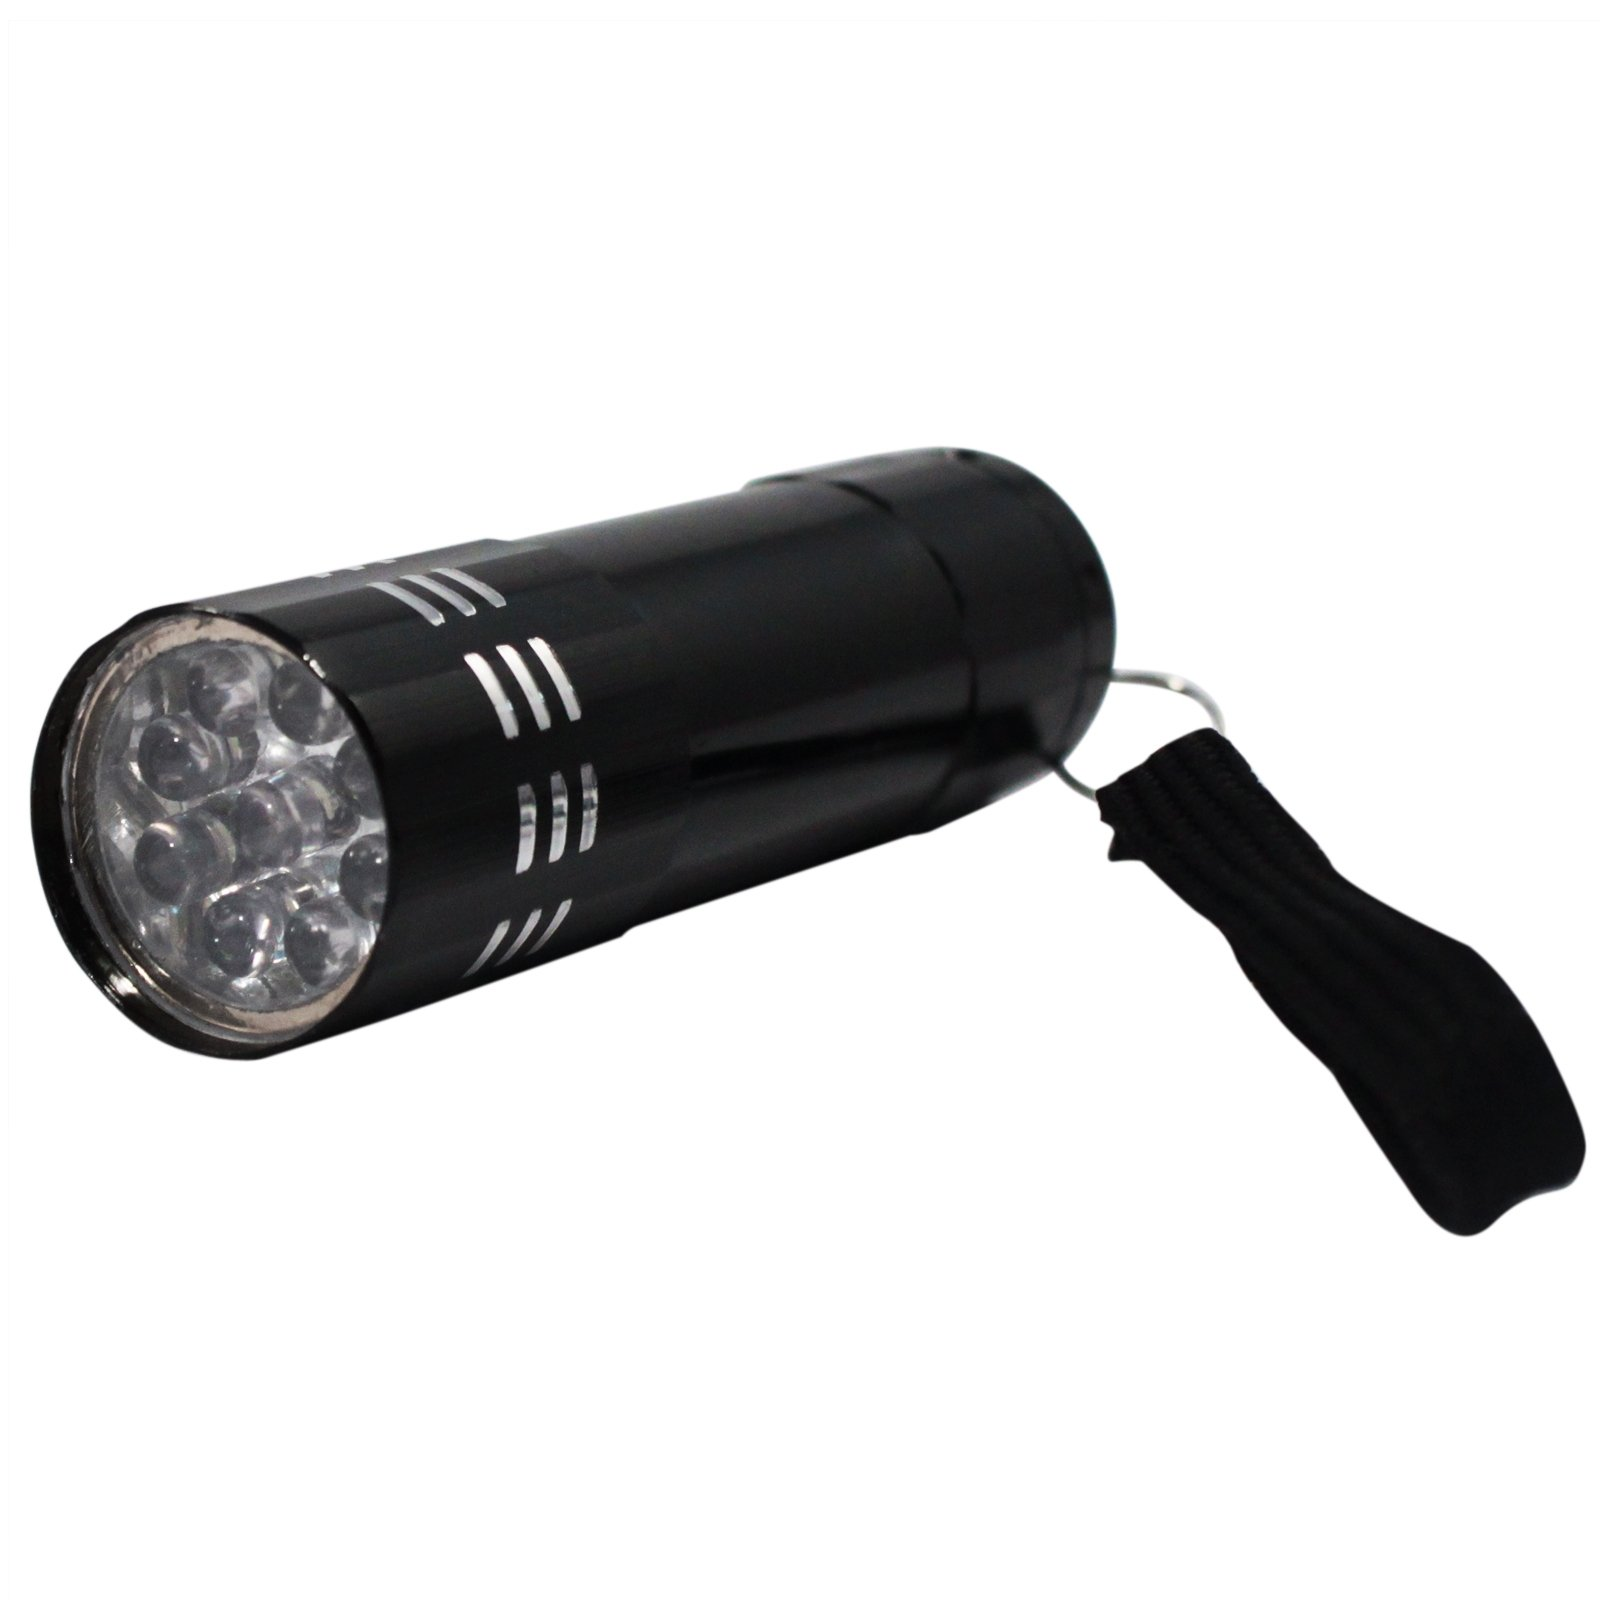 9 LED Super Bright Portable Black Mini Flashlight with Lanyard